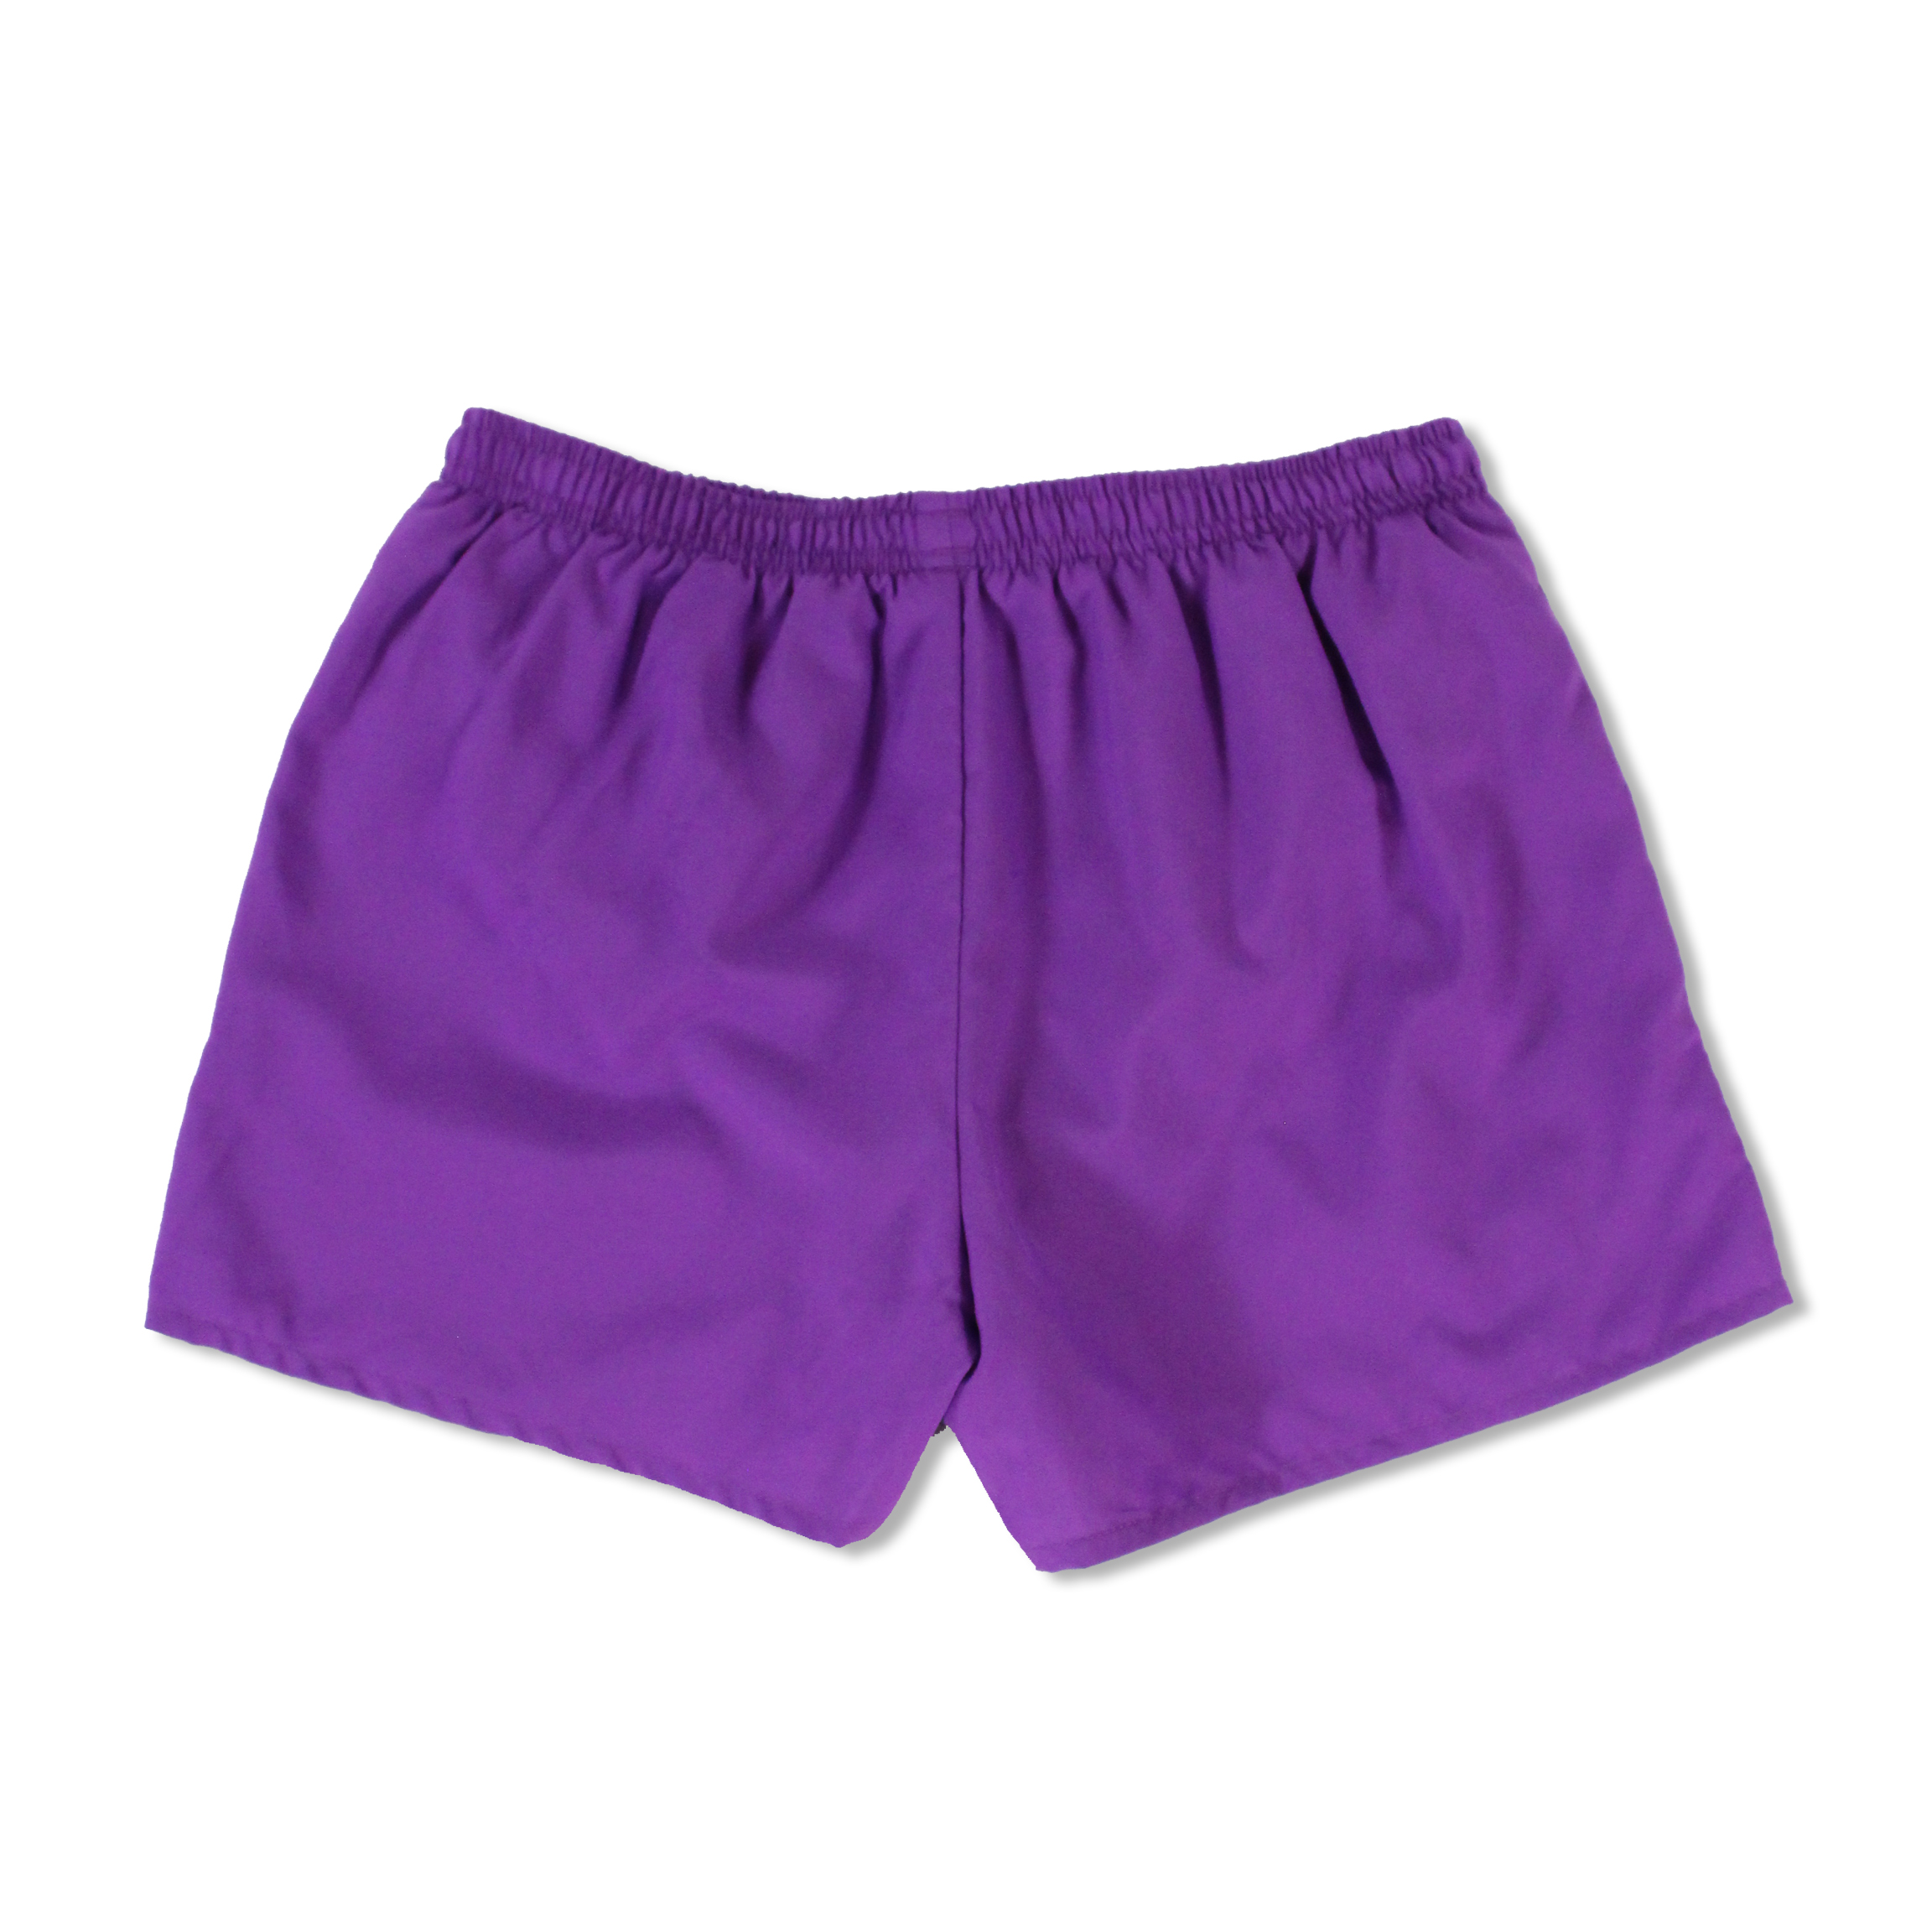 Asics-NEW-Solid-Women-039-s-Performance-Woven-Athletic-Shorts-30 thumbnail 7